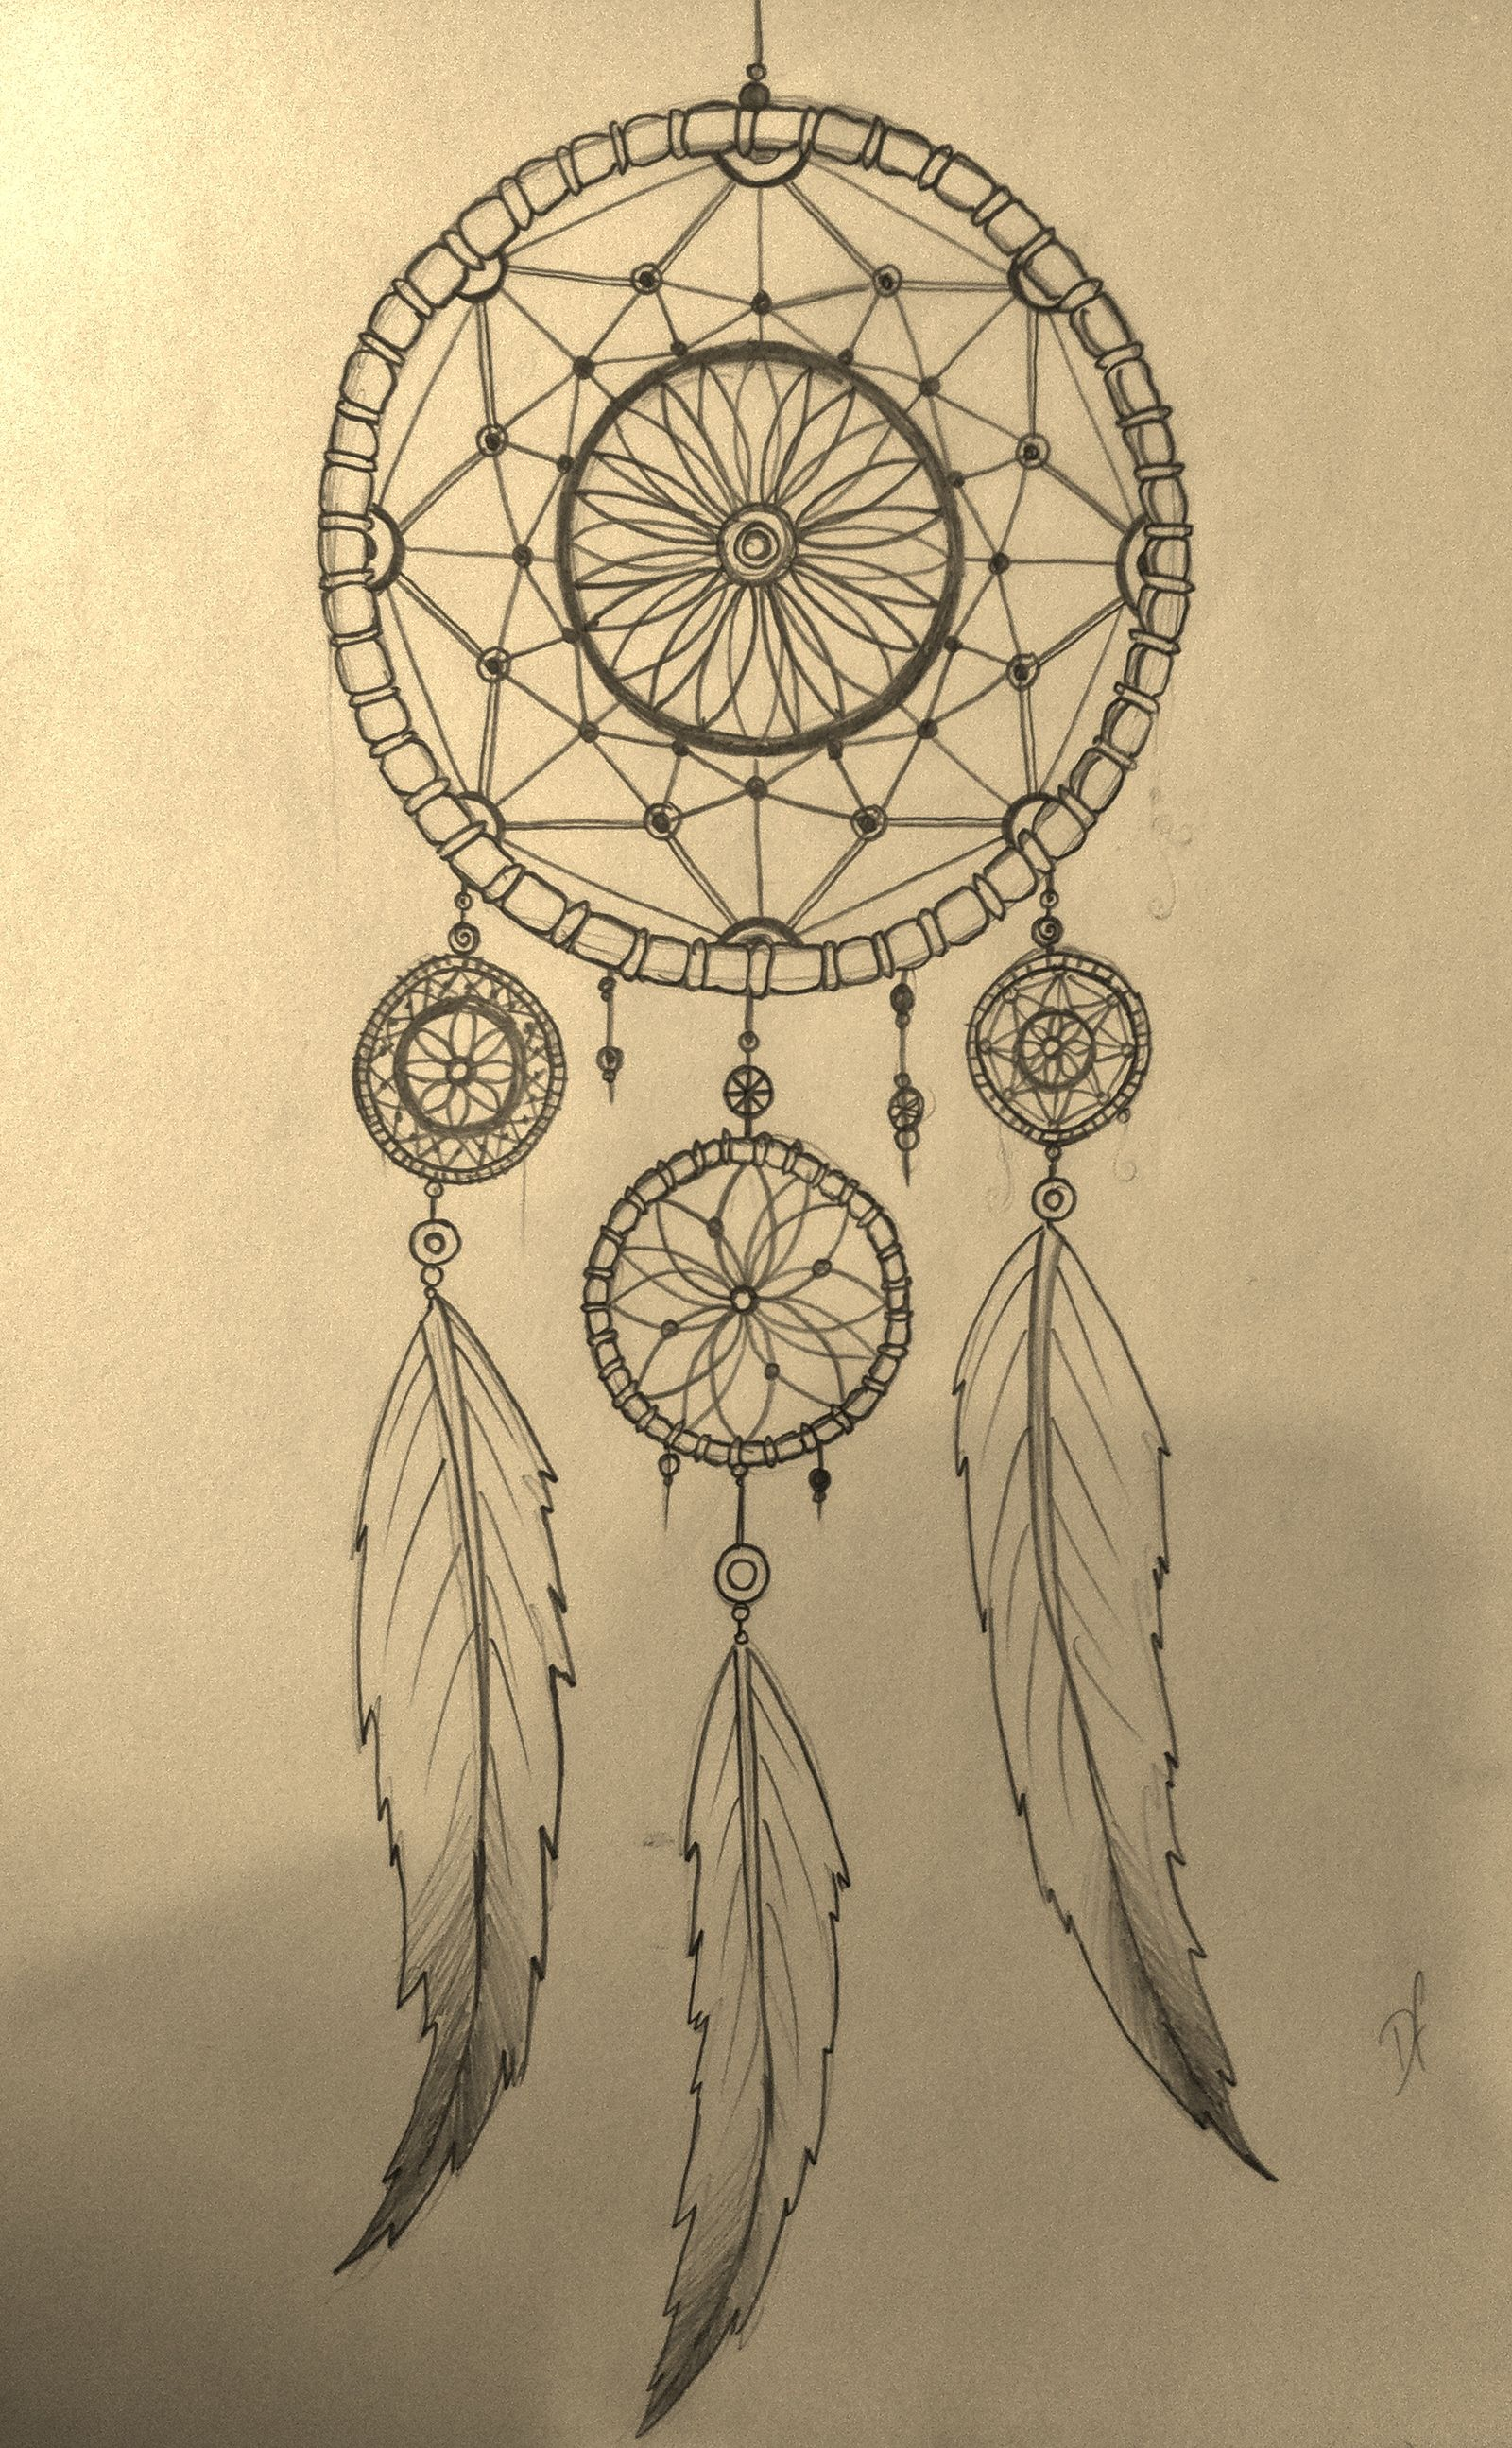 How To Draw A Simple Dream Catcher simple dreamcatcher designs Google Search Dream catchers Art 14